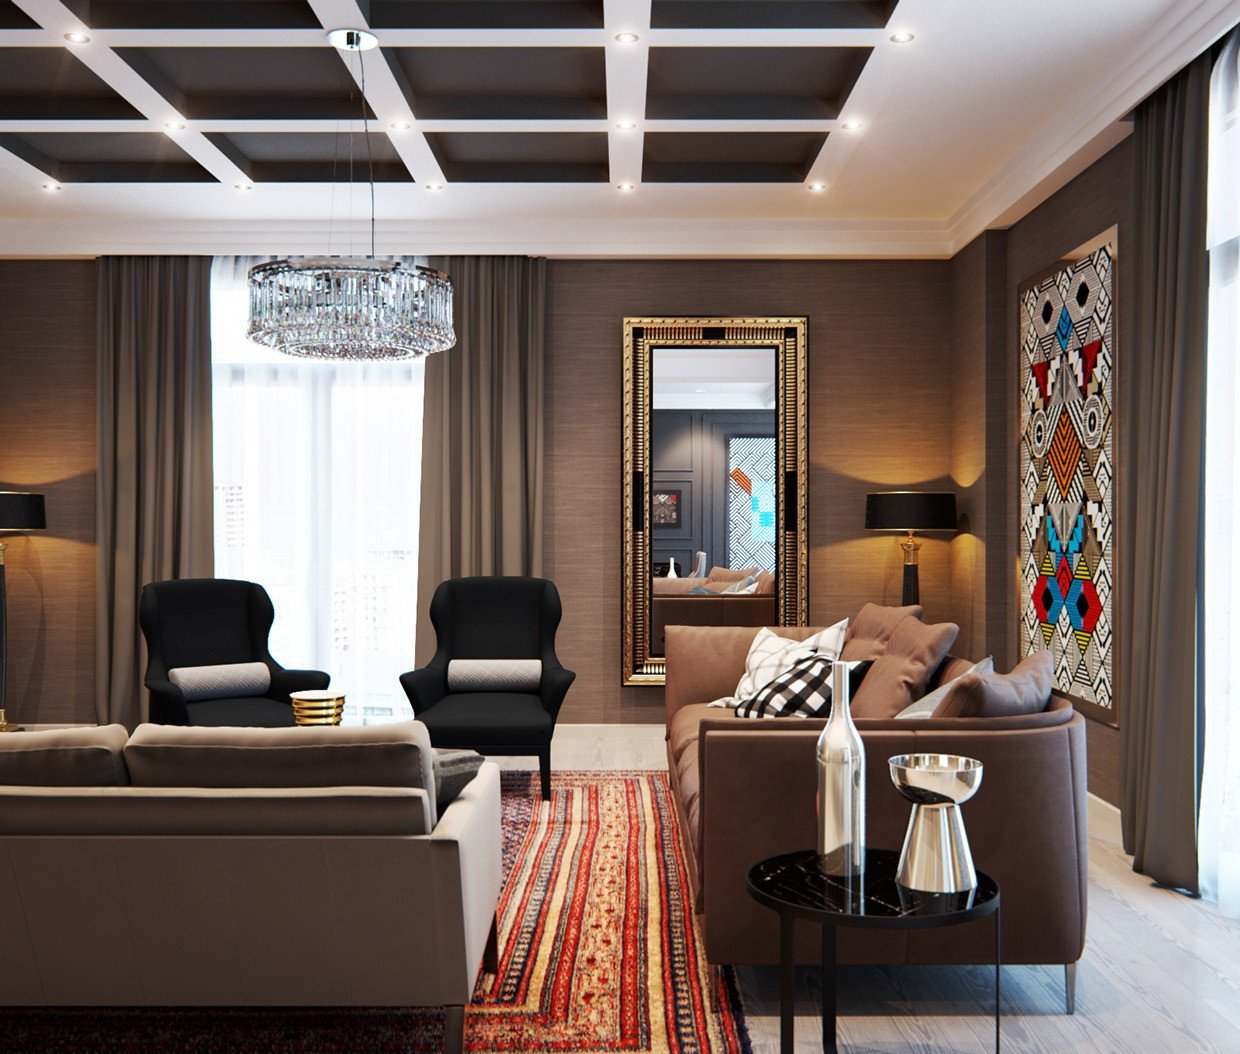 Elegant Contemporary Living Room Elegant A Modern Interior Home Design which Bining A Classic Decor that Would Bring Out A Trendy